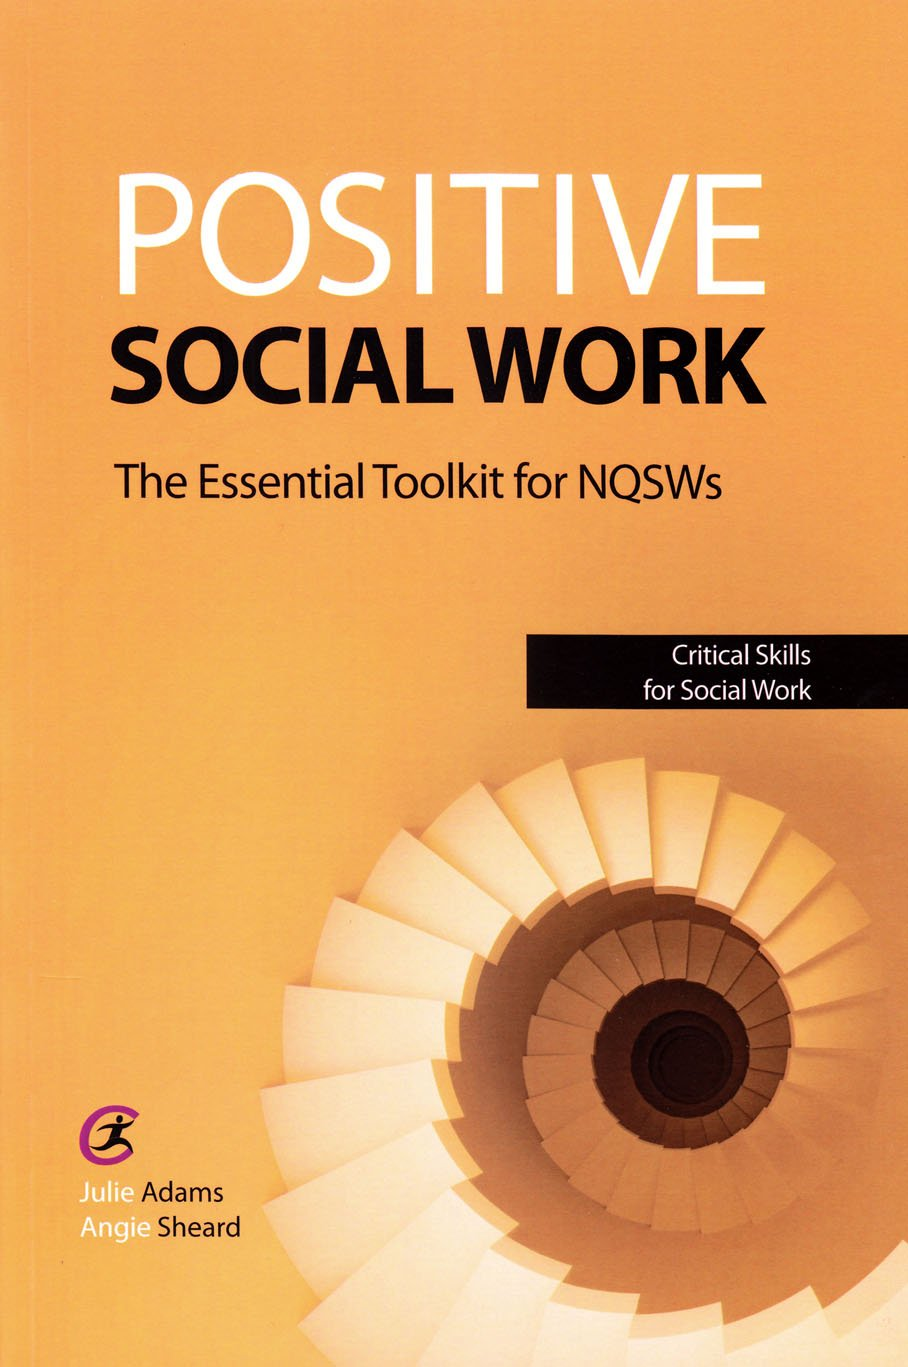 positive social work the essential toolkit for nqsws critical positive social work the essential toolkit for nqsws critical skills in social work critical skills for social work amazon co uk julie adams